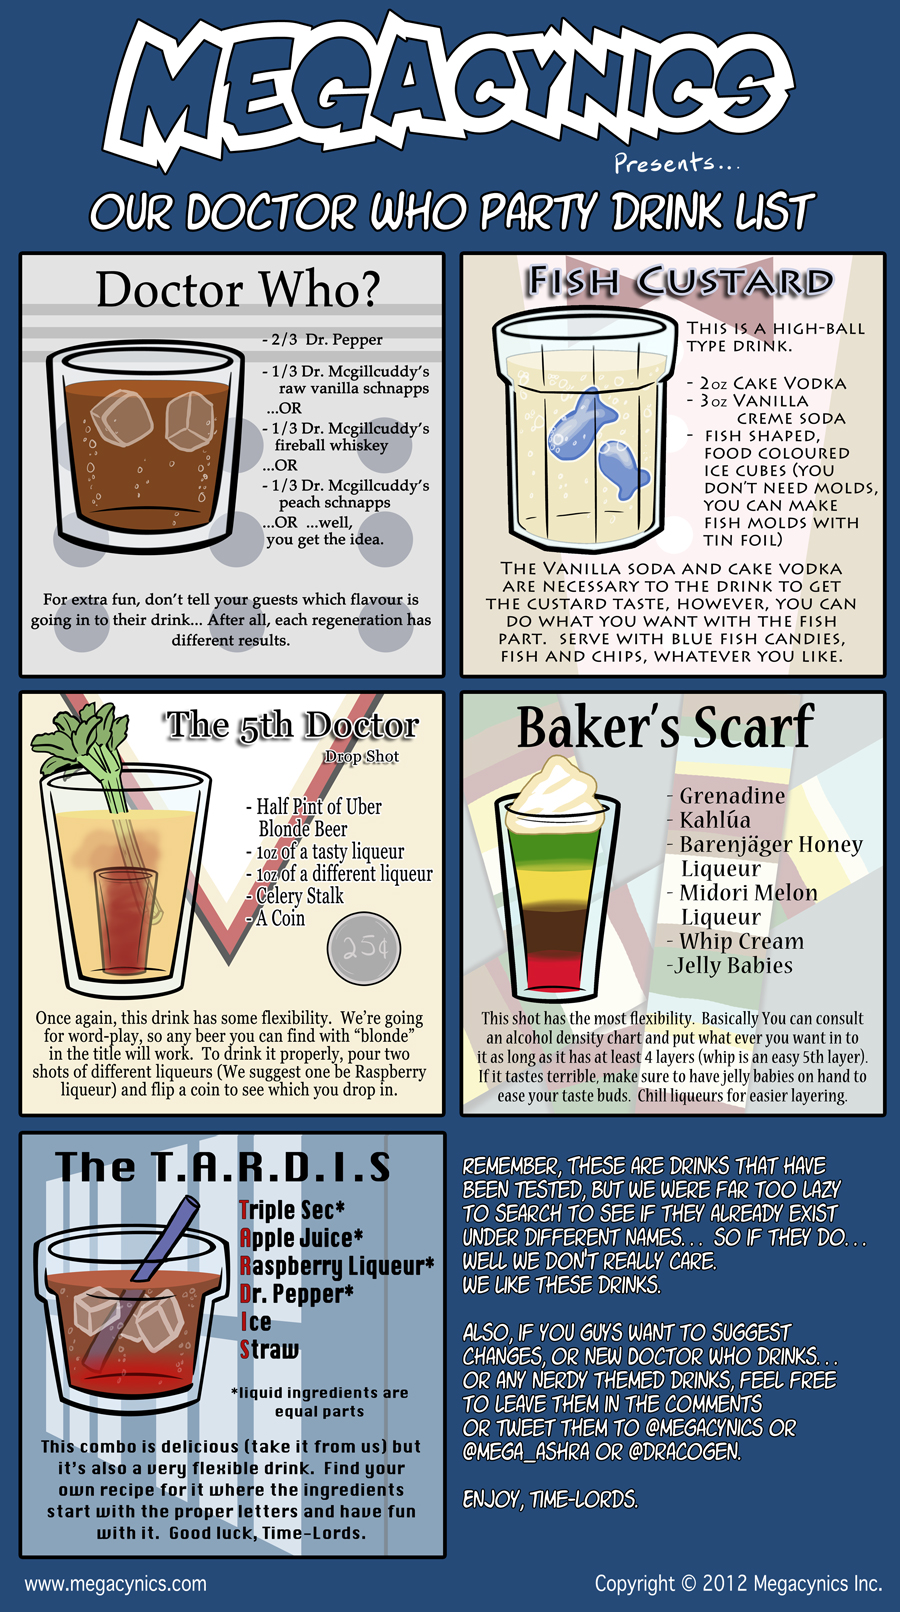 MegaCynics: Doctor Who Drink List (May 25, 2012)